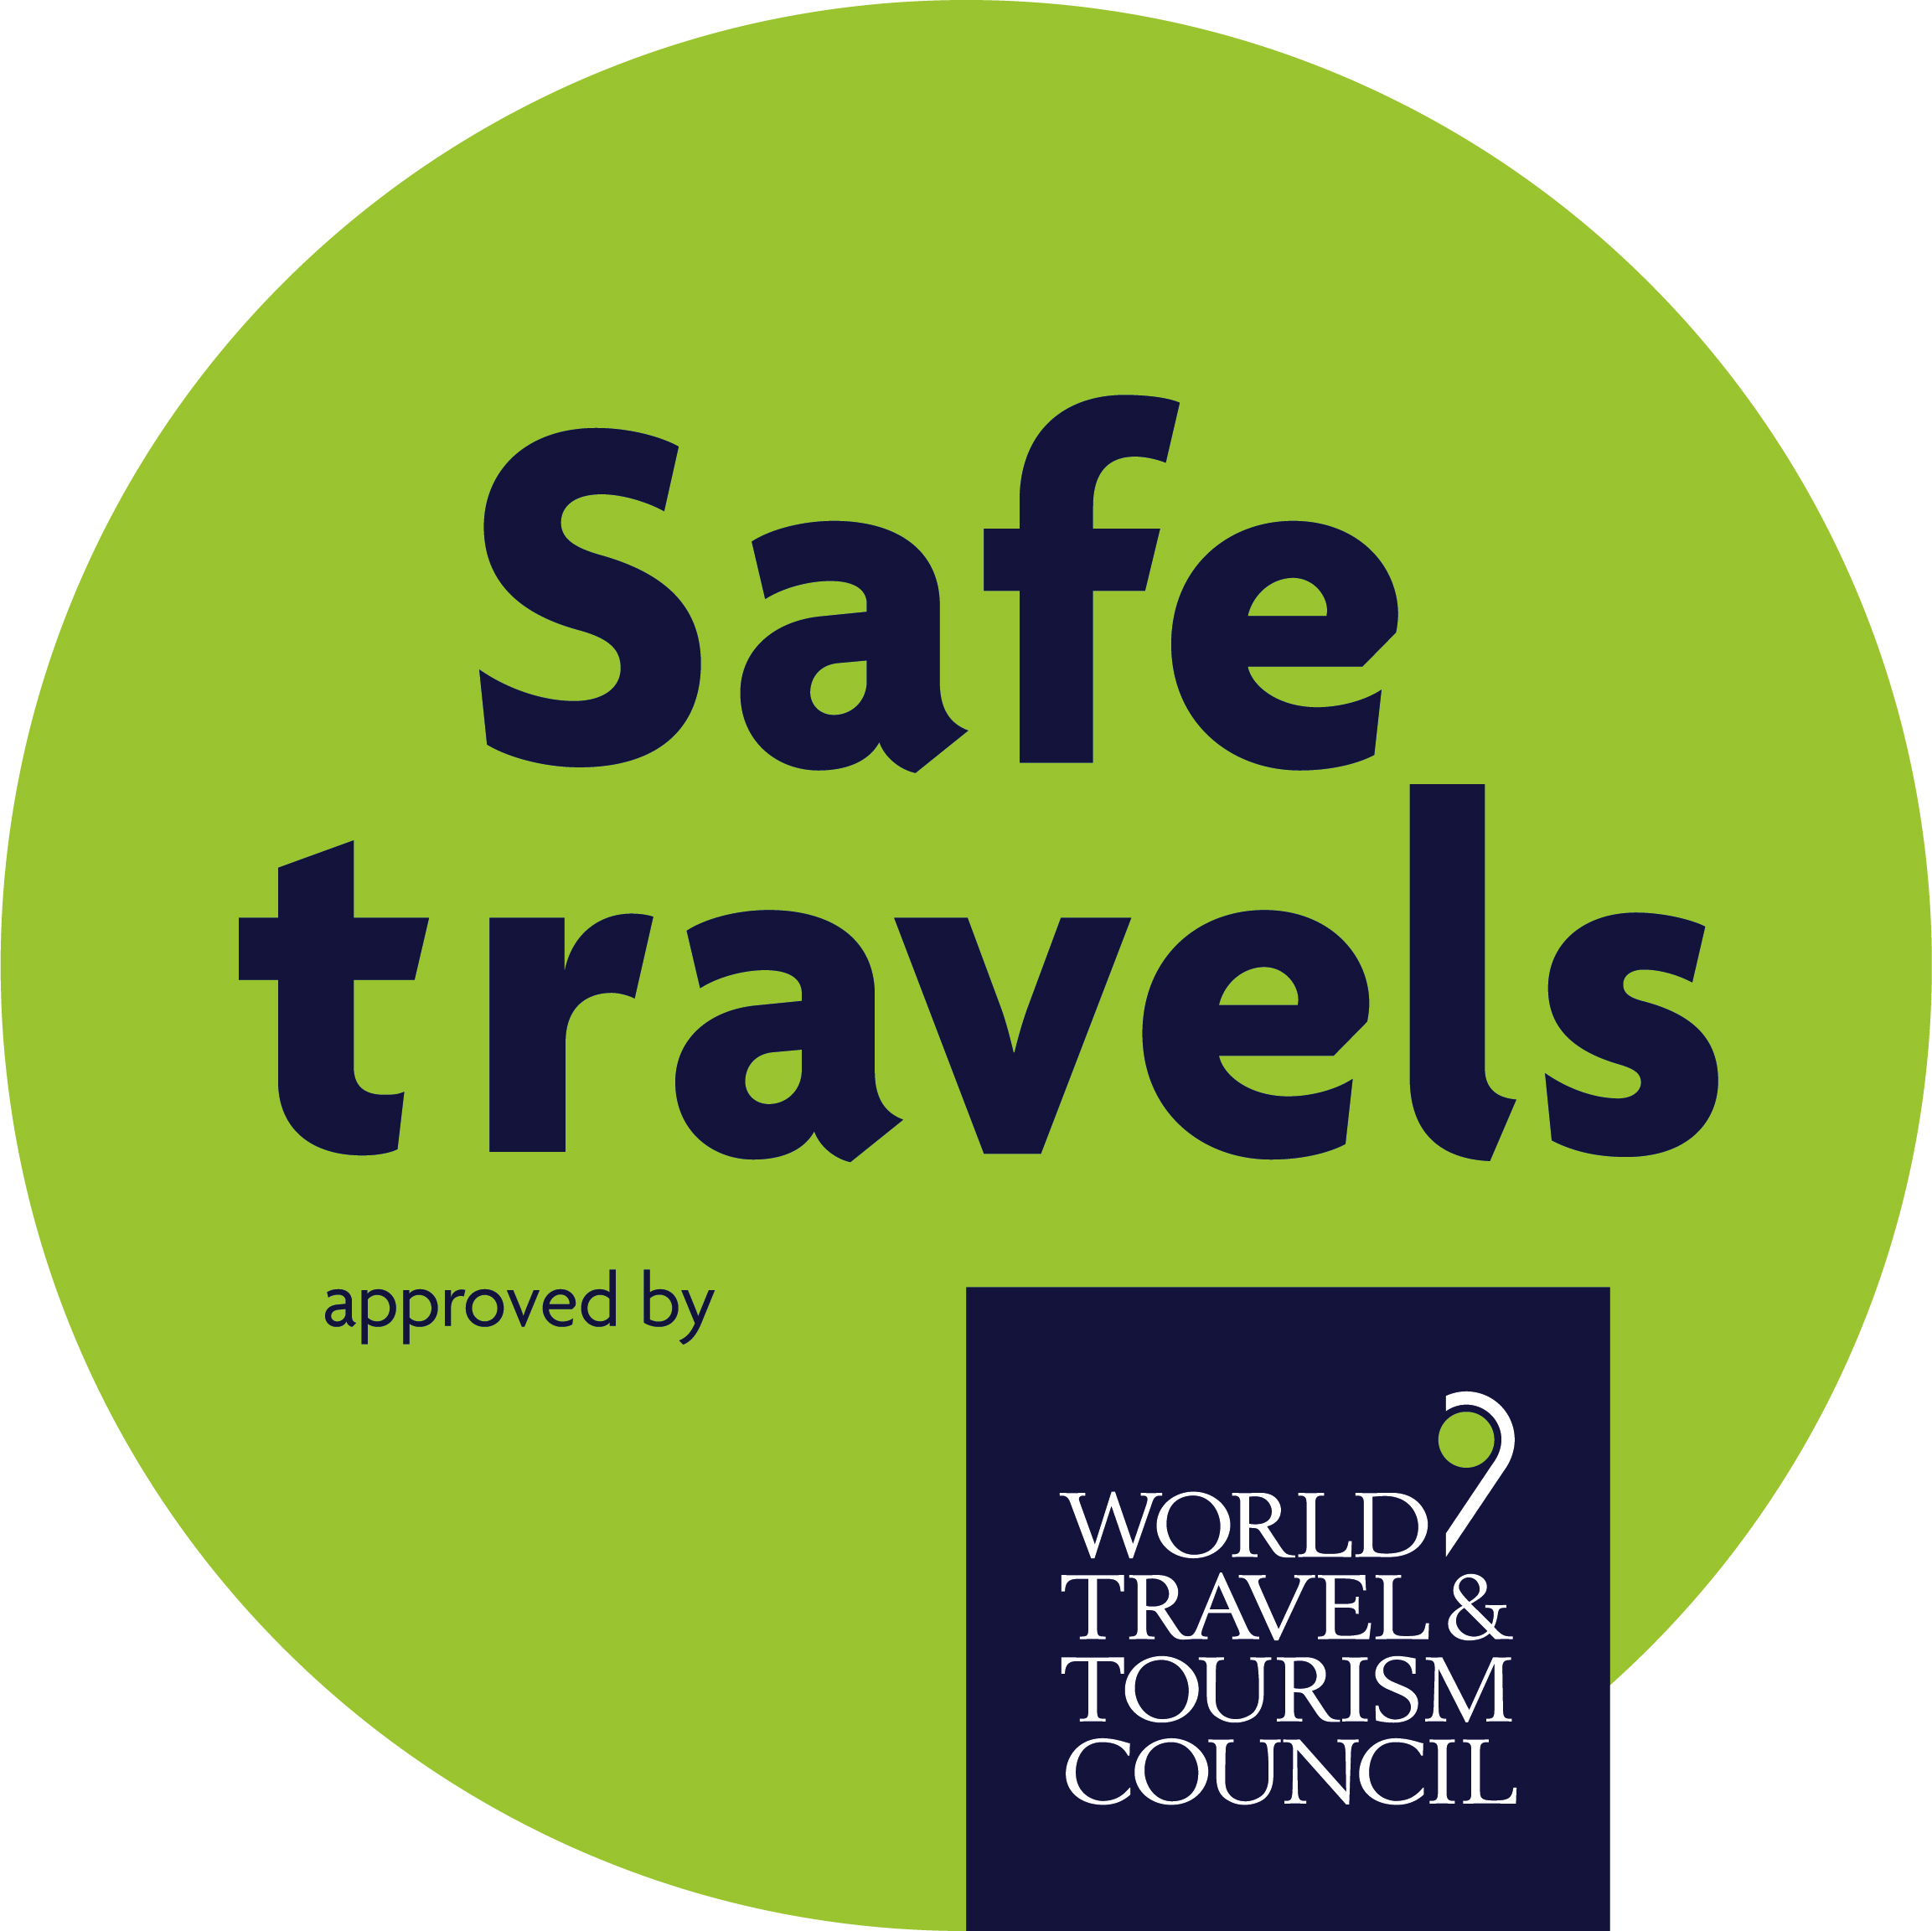 WTTC launches Safe Travels protocols for attractions, car hire and short-term rental